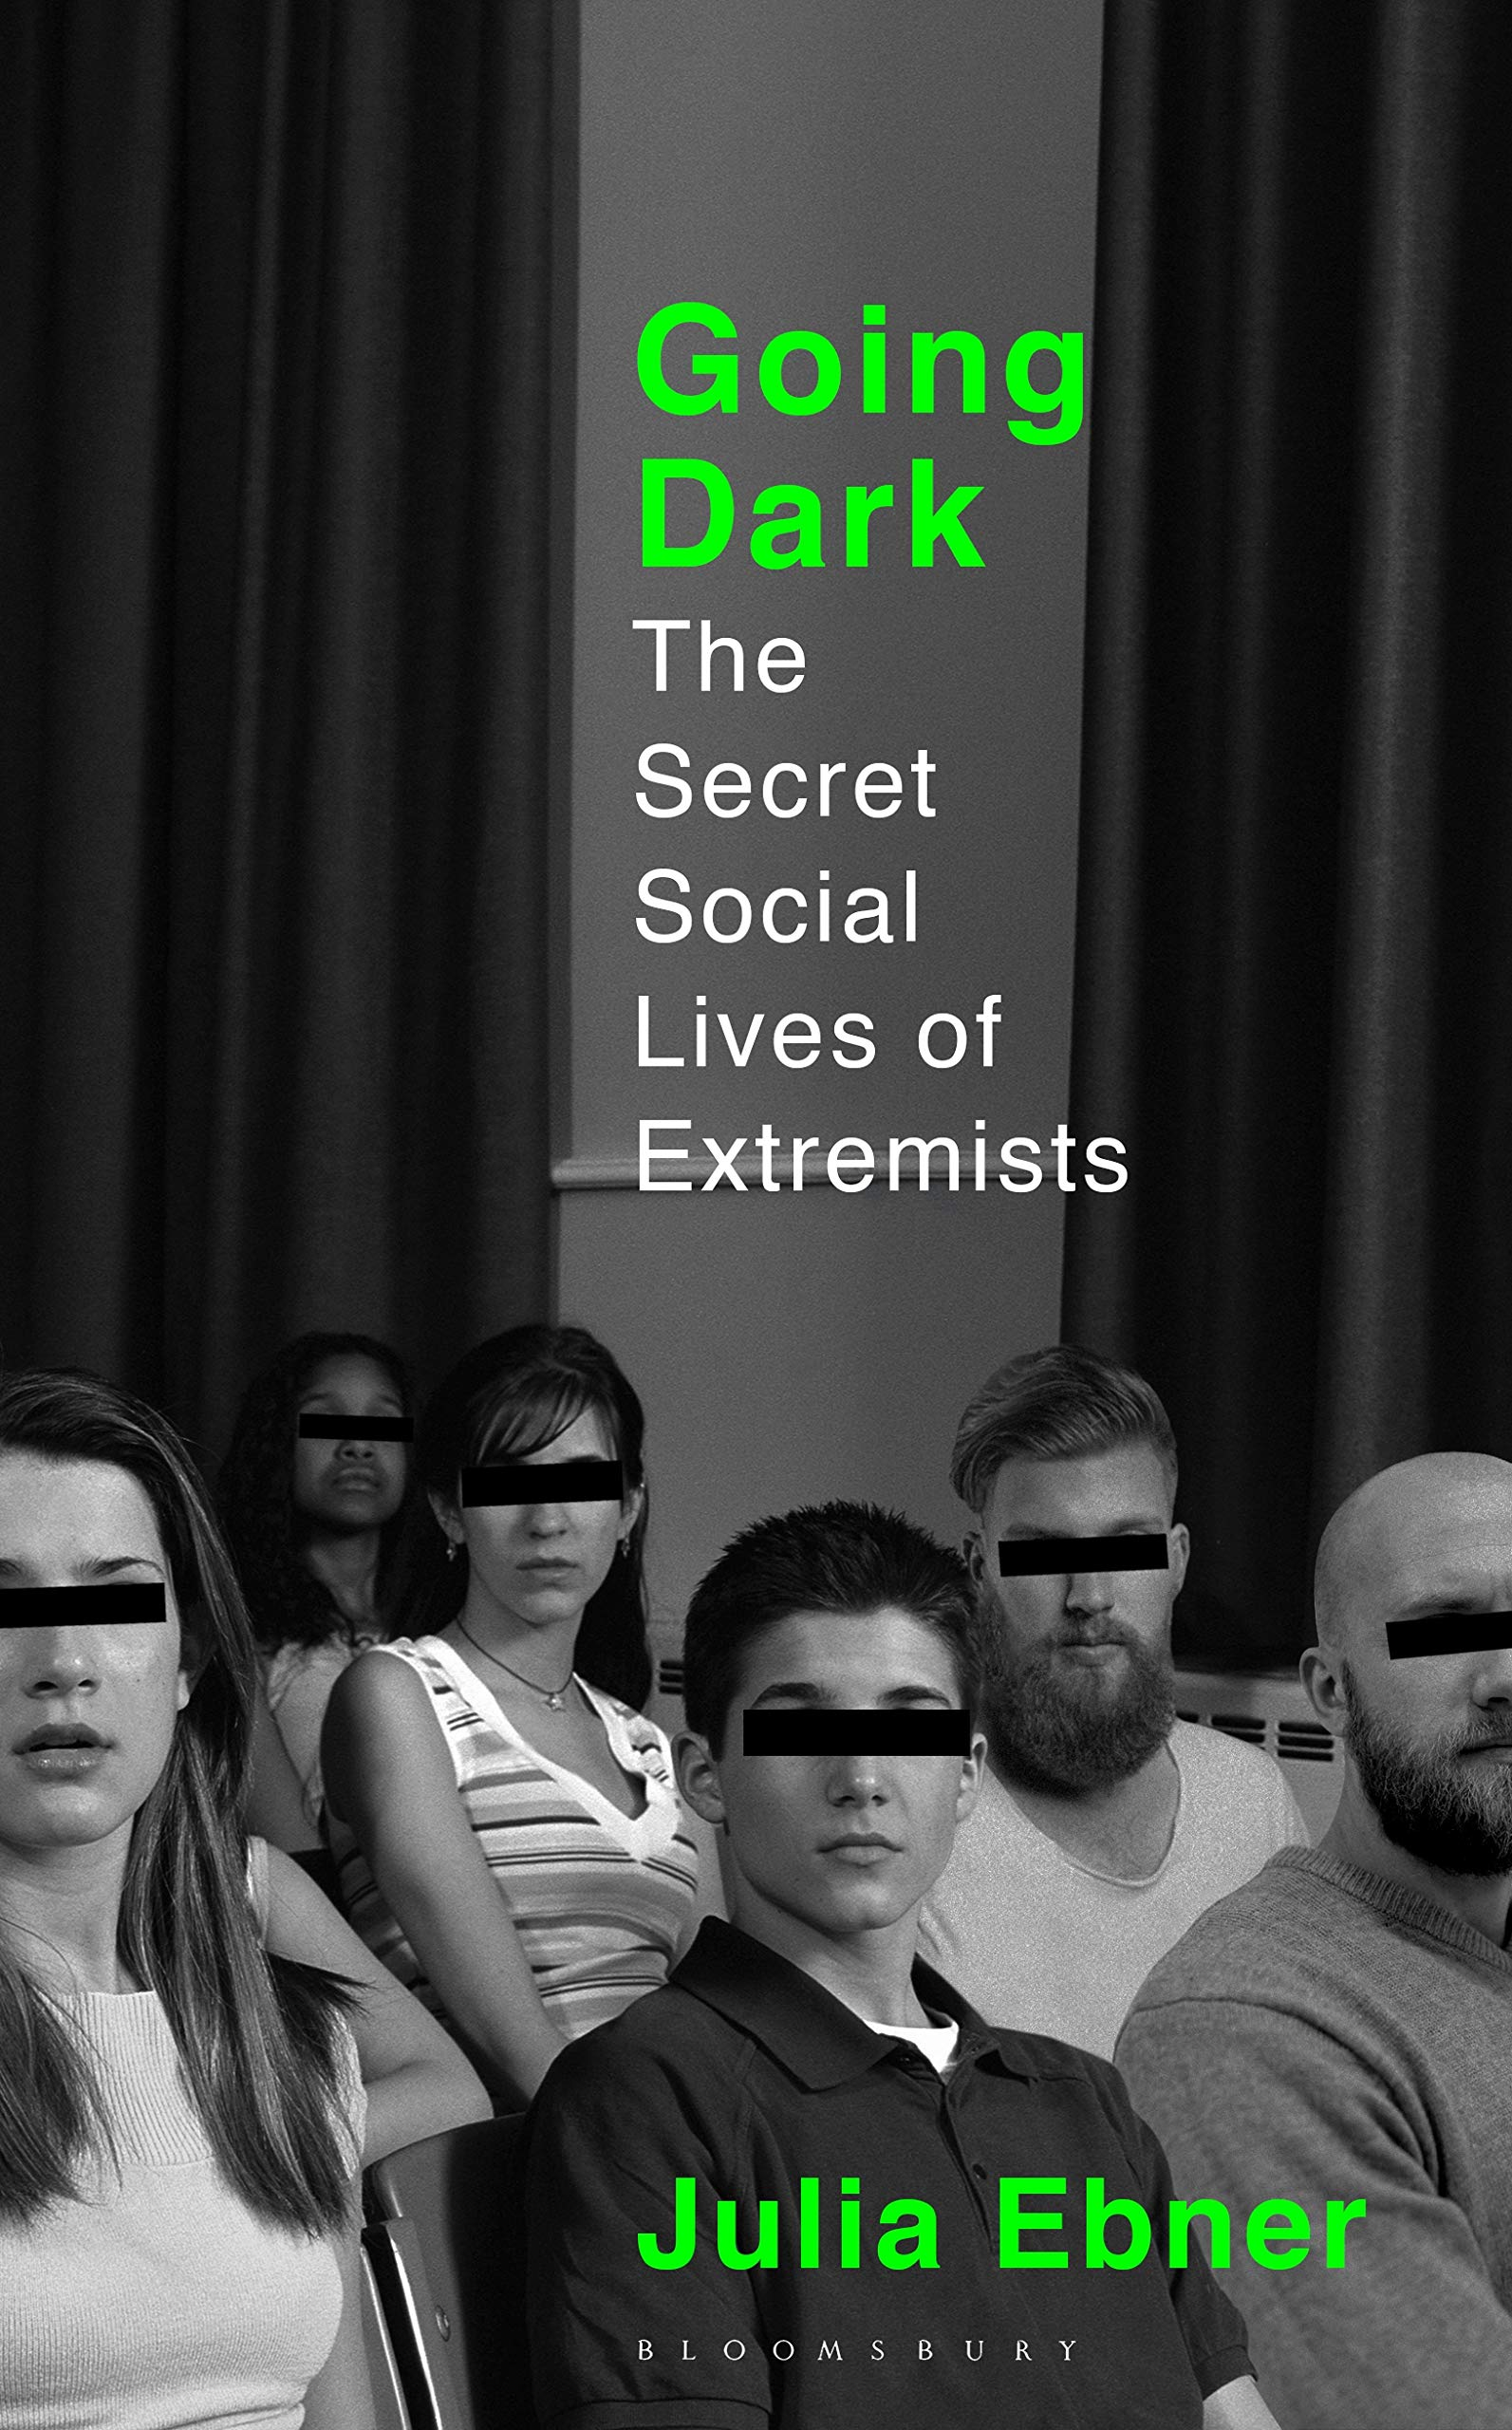 Buy Going Dark: The Secret Social Lives of Extremists Book Online at Low  Prices in India | Going Dark: The Secret Social Lives of Extremists Reviews  & Ratings - Amazon.in